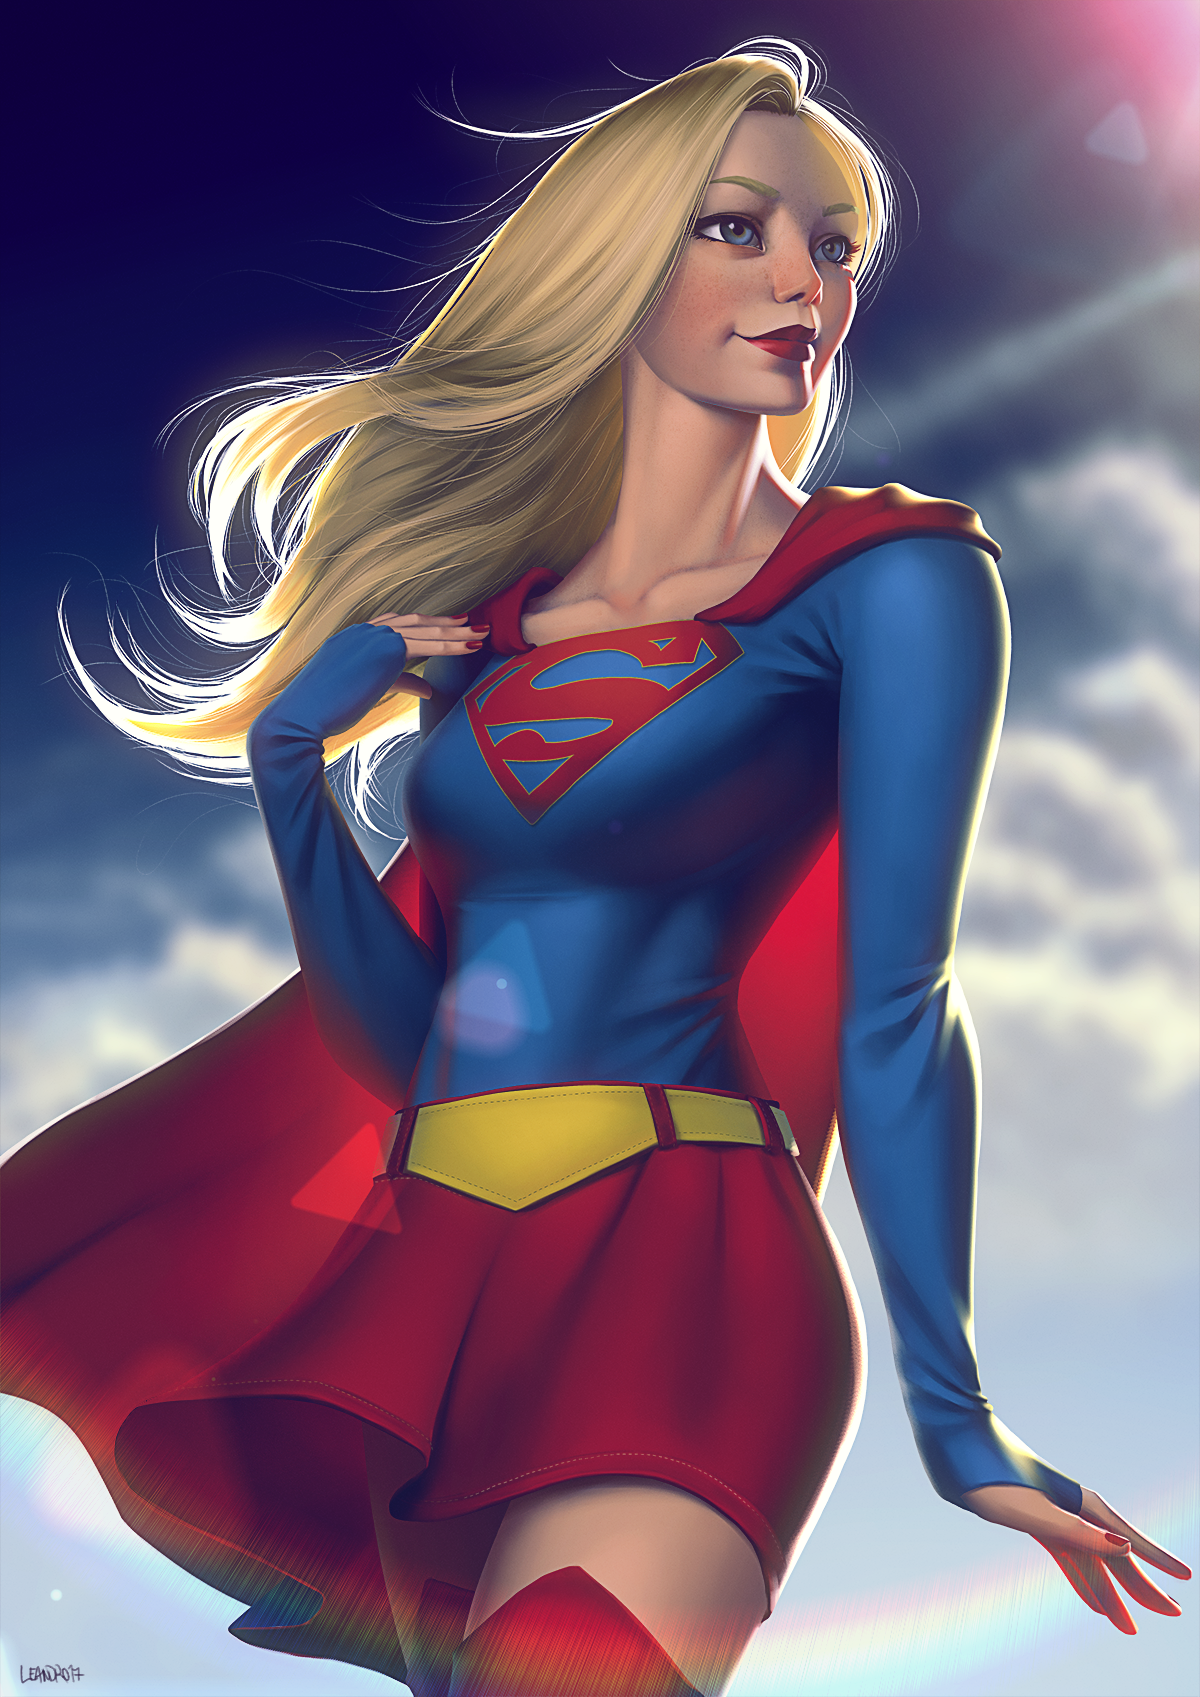 supergirl 2017 by lenadrofranci on deviantart superman logo png superman logo wallpaper